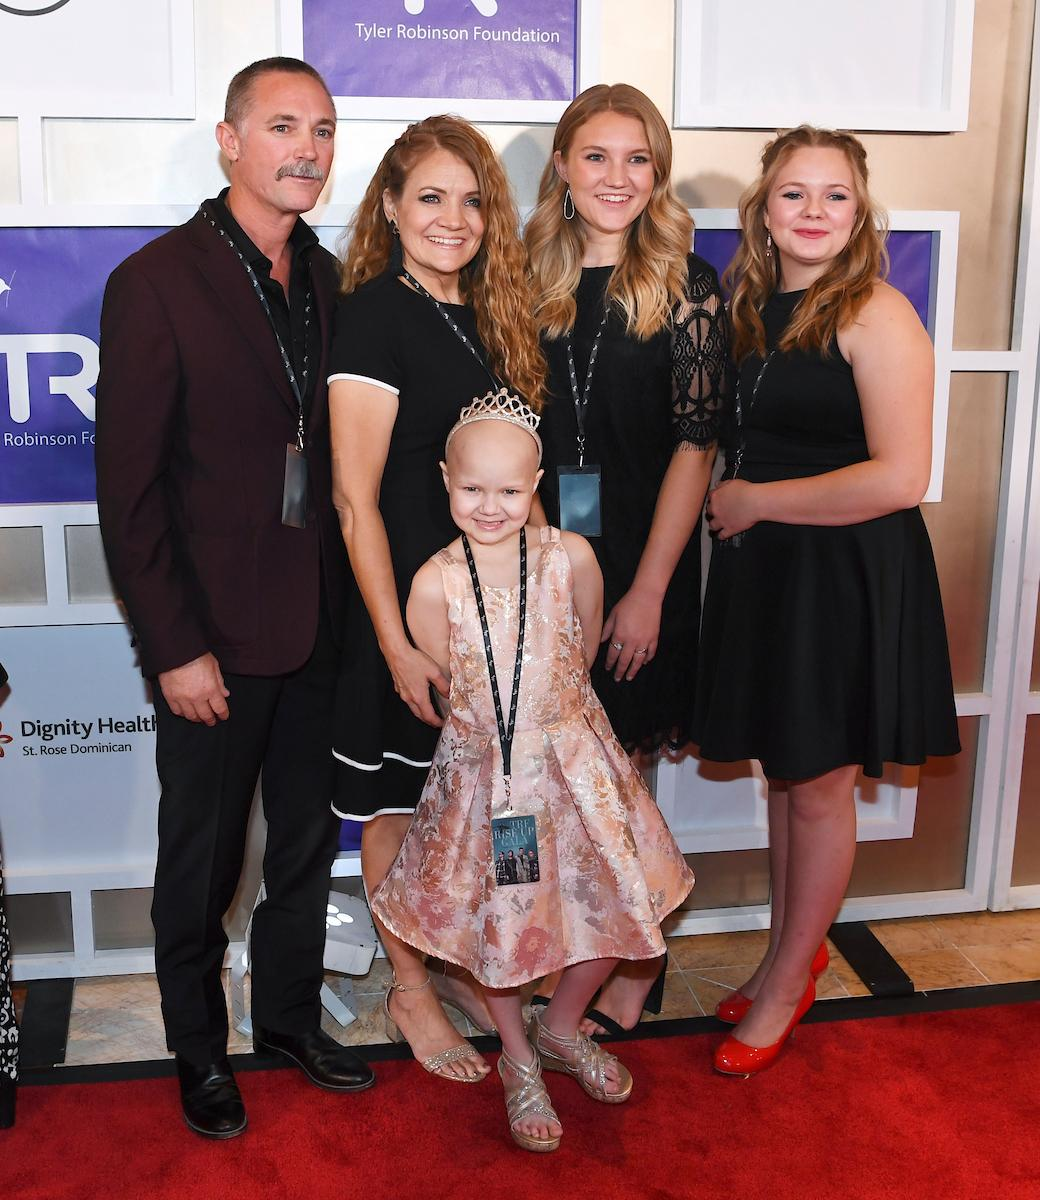 The Clark family, including Raynie Clark, appears on the red carpet for the Rise Up Gala, and event created to raise funds for the Tyler Robinson Foundation, Friday, September 6, 2019, at the Wynn. (Sam Morris/Las Vegas News Bureau)